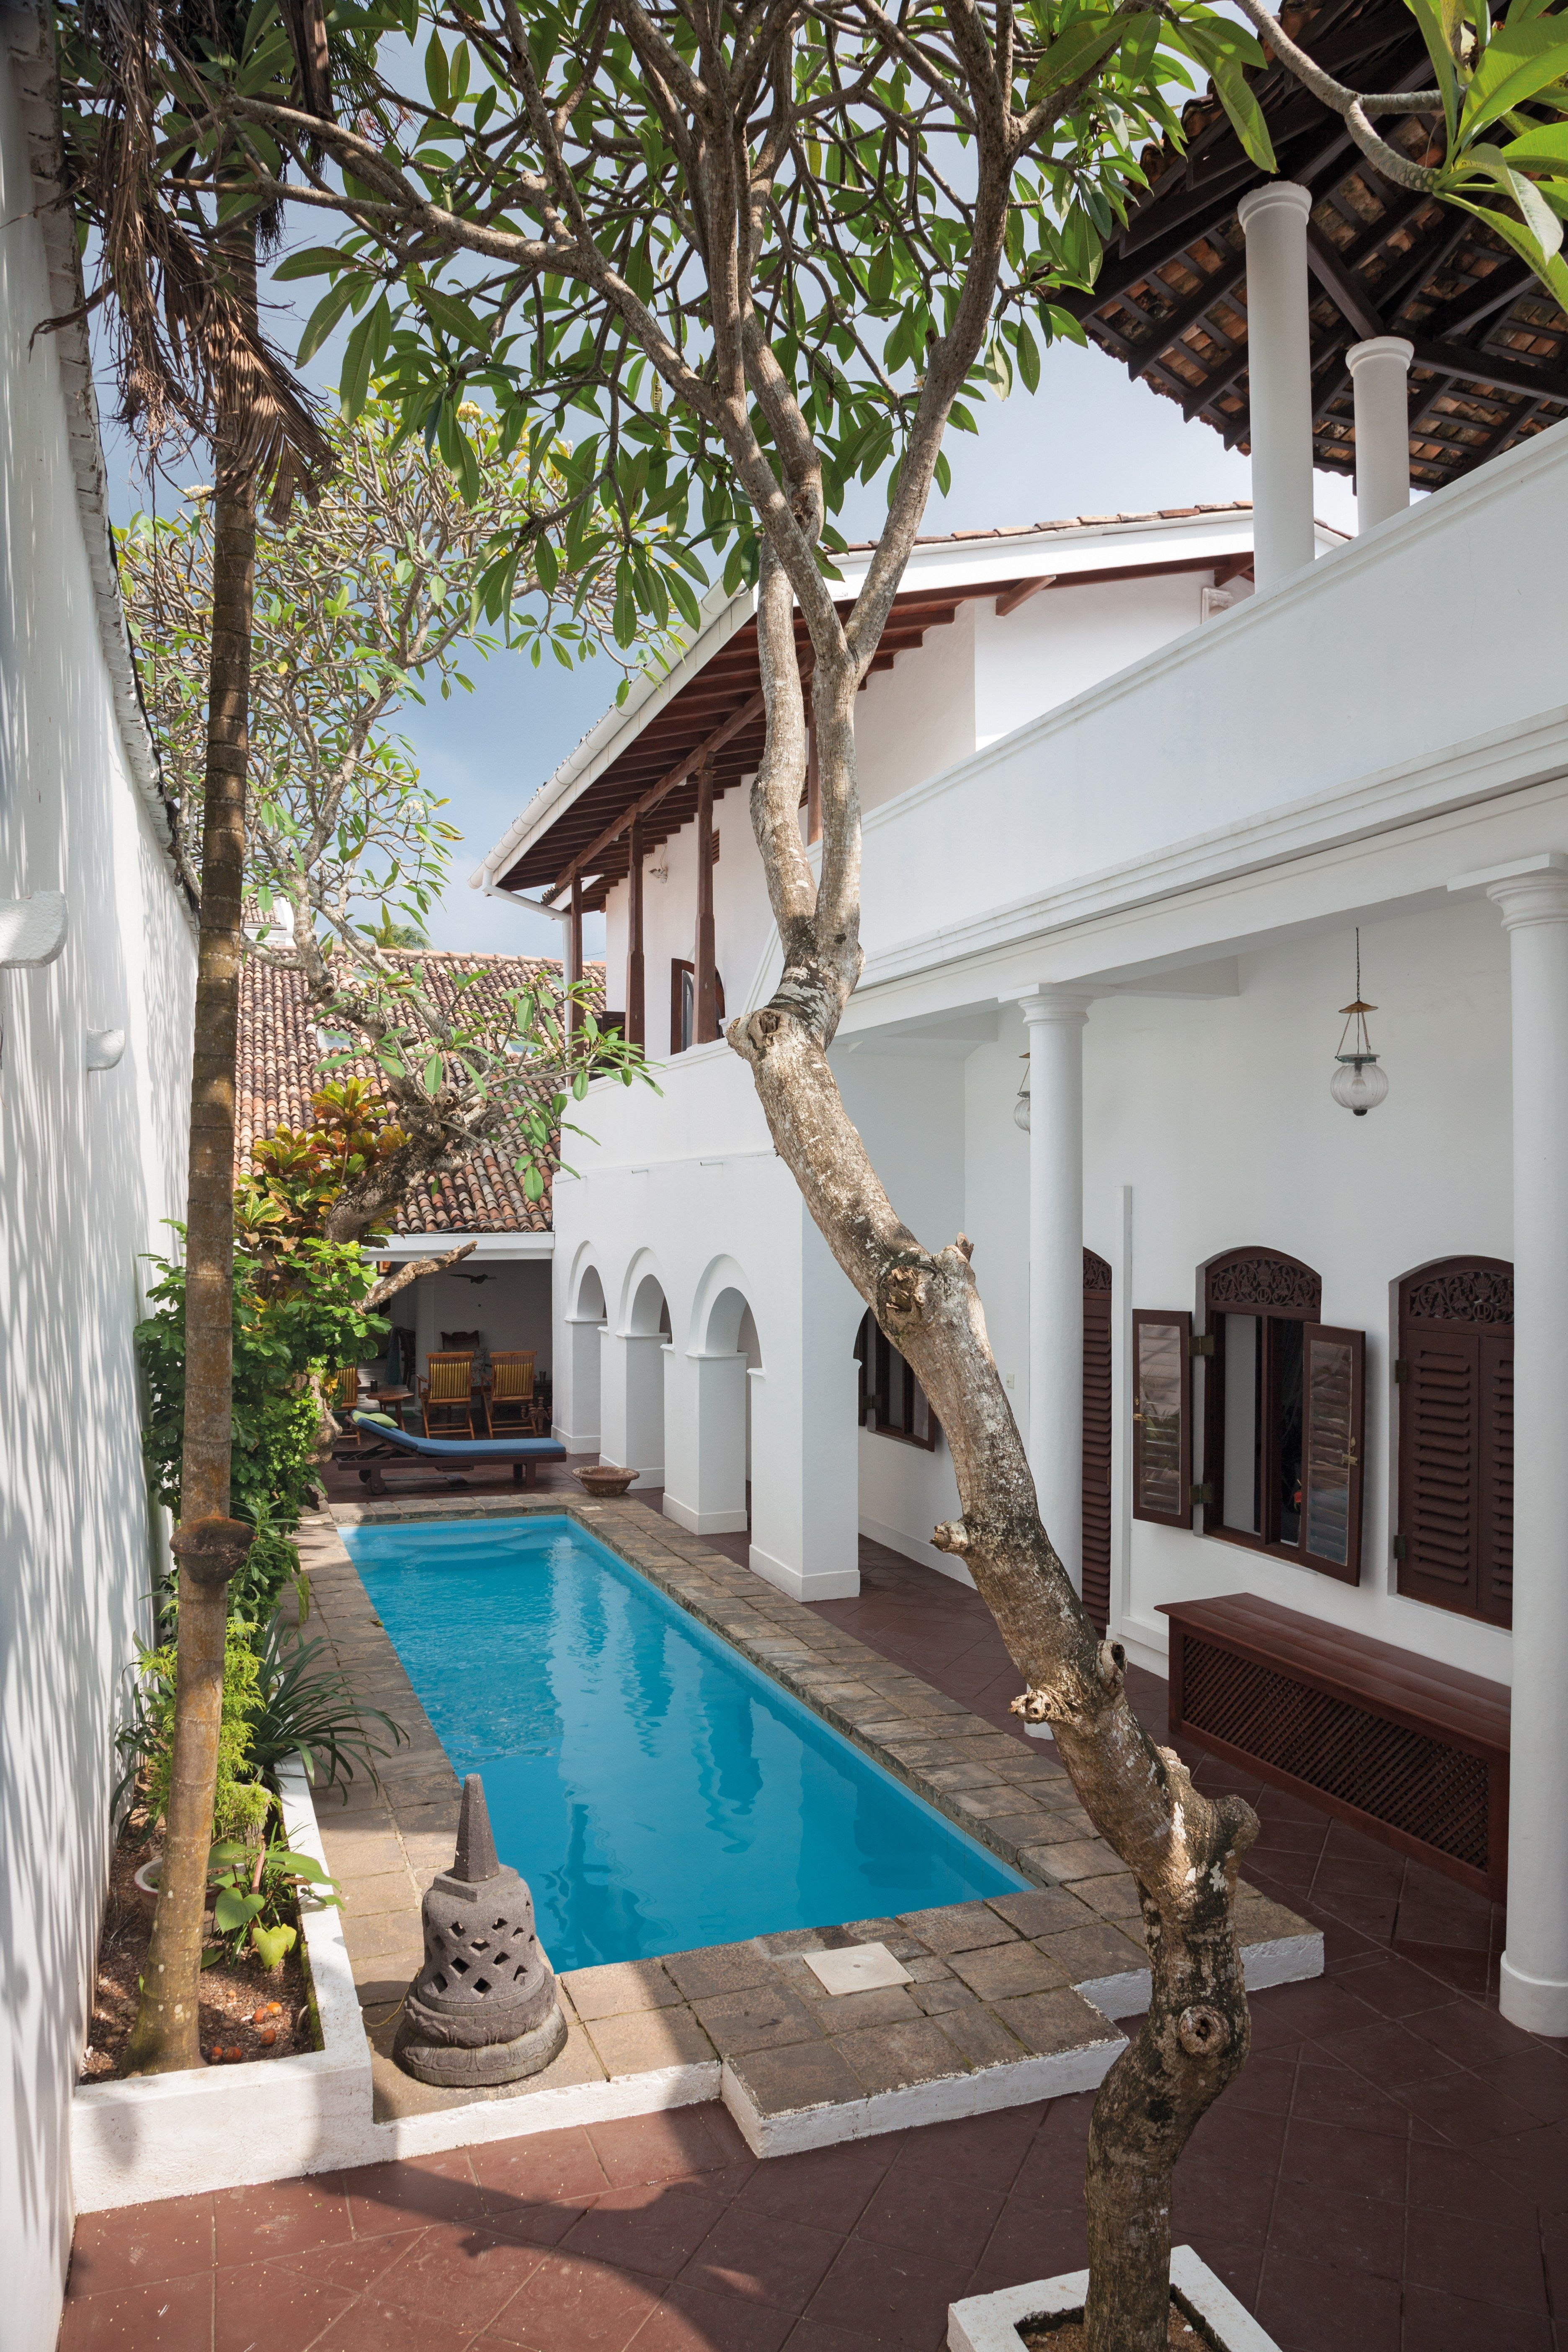 Lanka House Design: Sri Lankan Homes That Will Inspire Your Vacation House